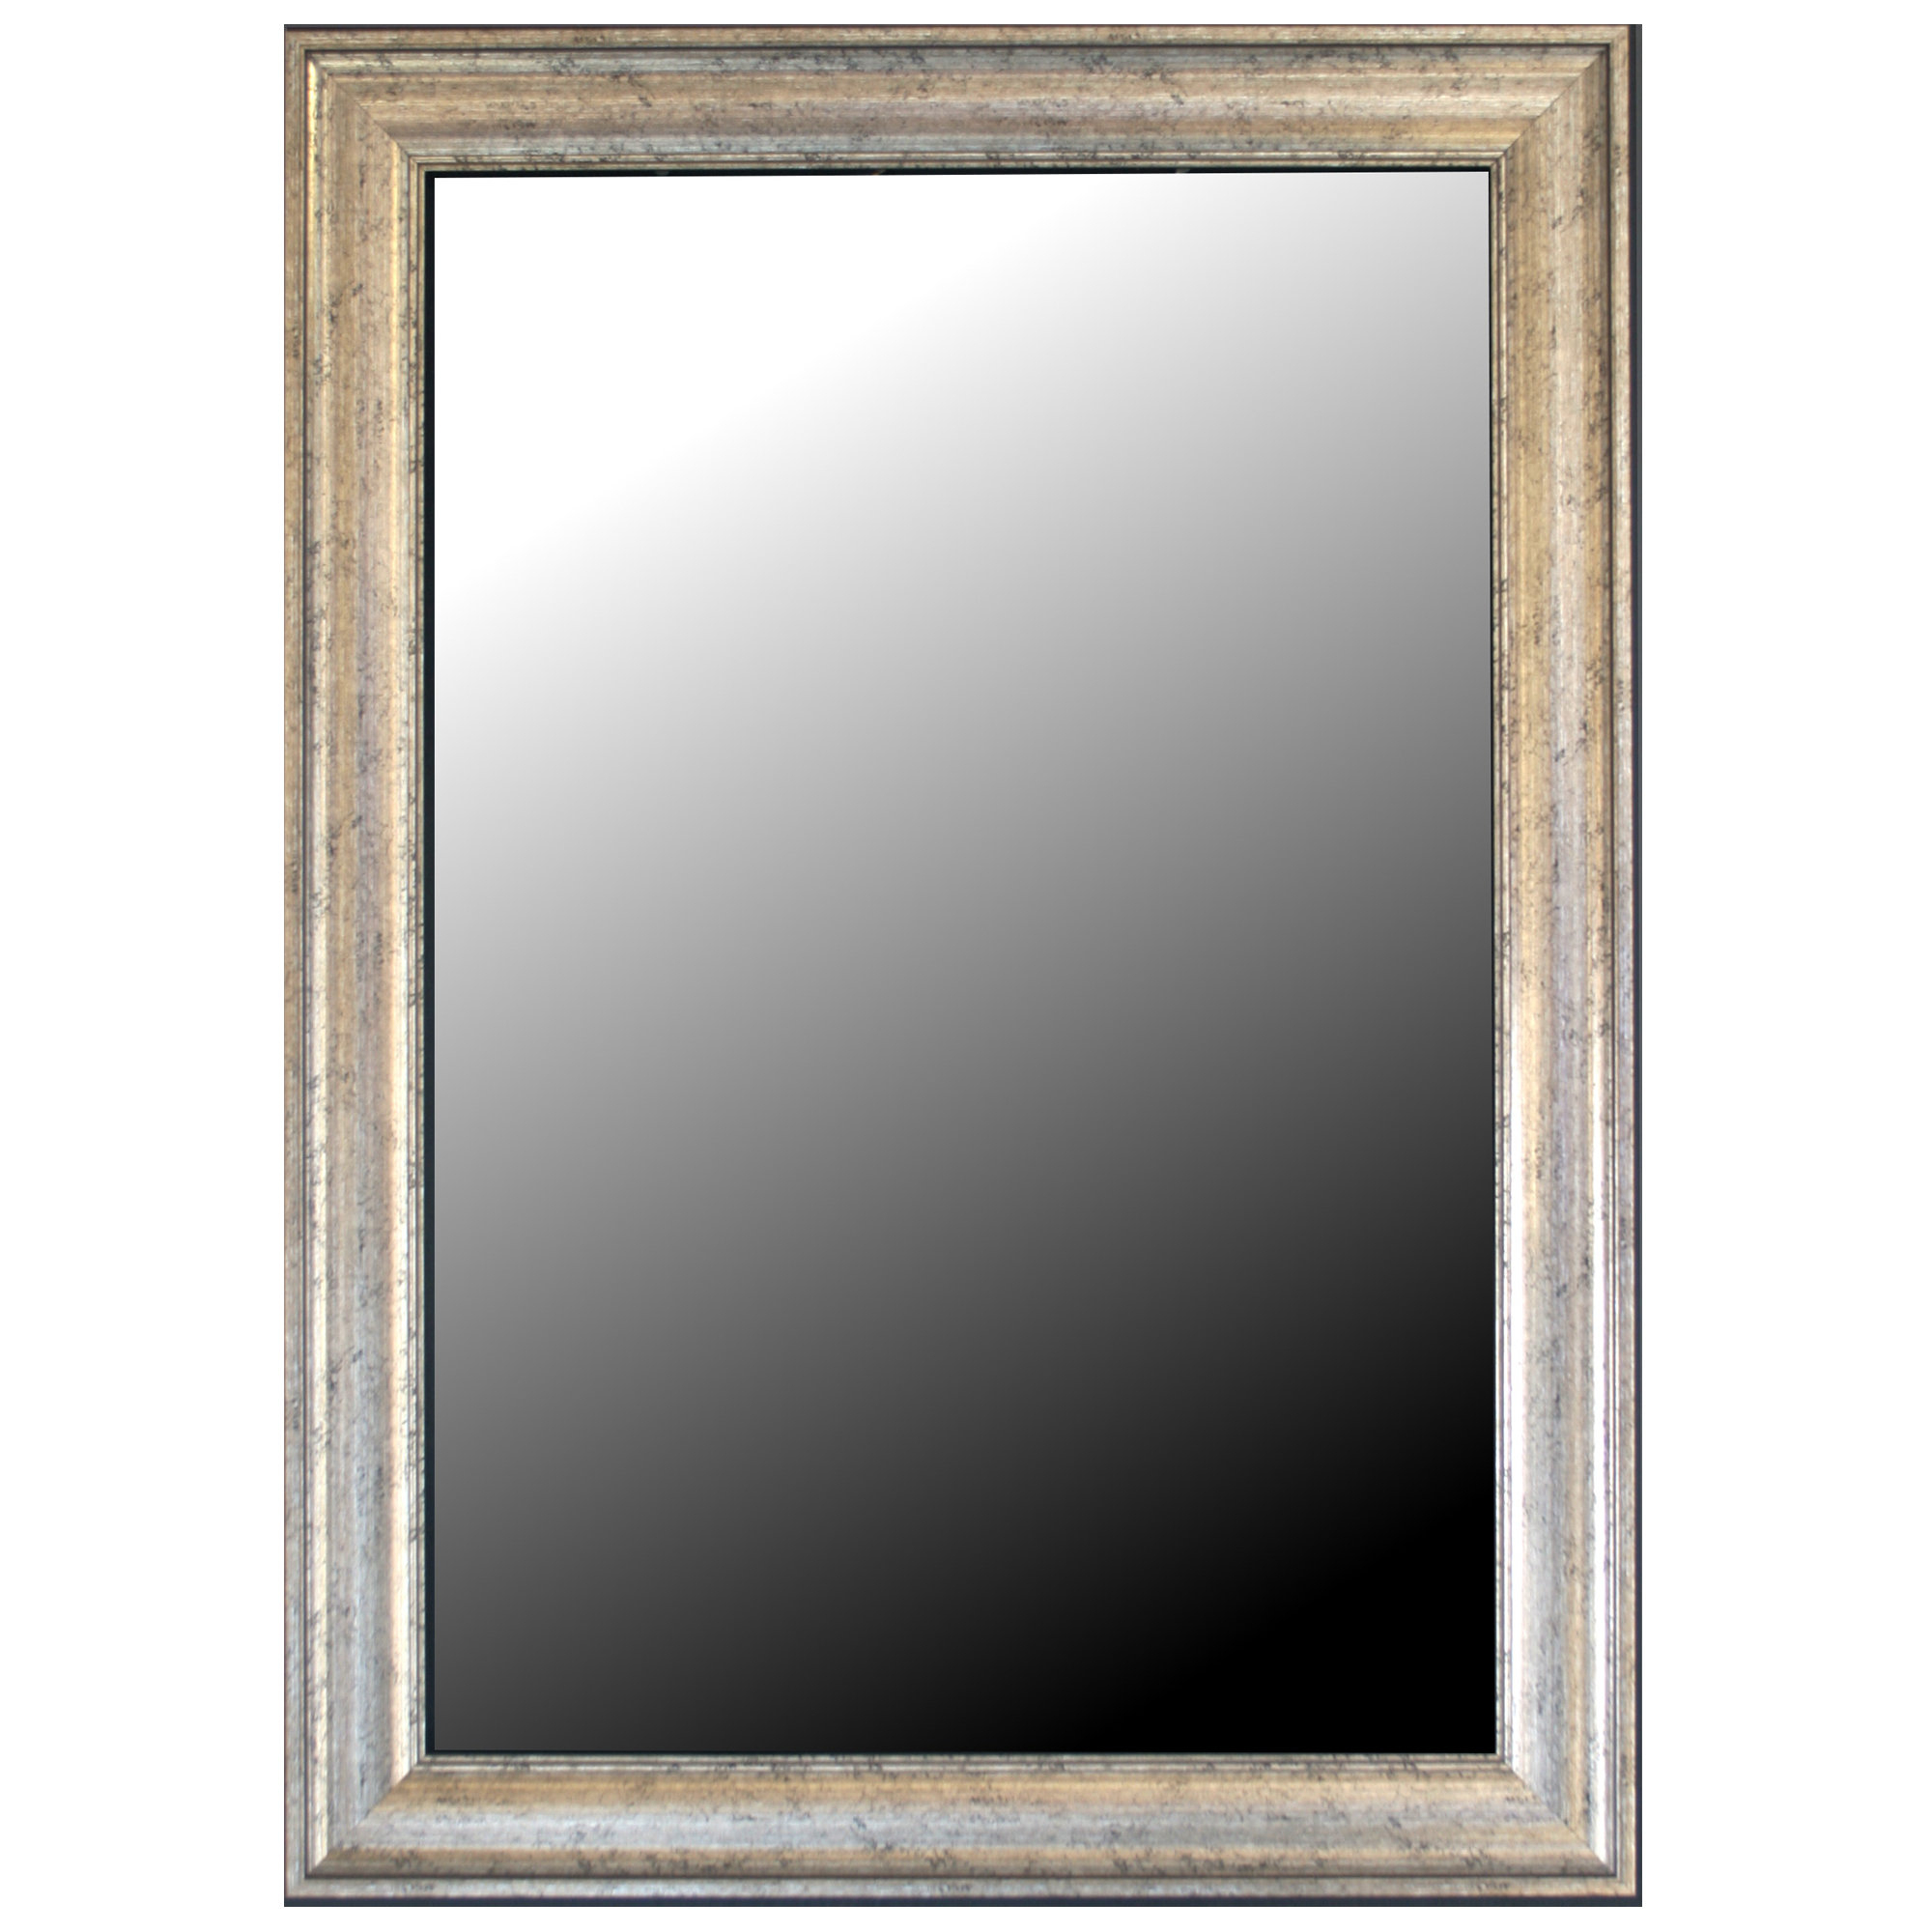 Most Popular Kristy Rectangular Beveled Vanity Mirrors In Distressed Inside Curren Vintage Beveled Silver Wall Mirror (View 13 of 20)